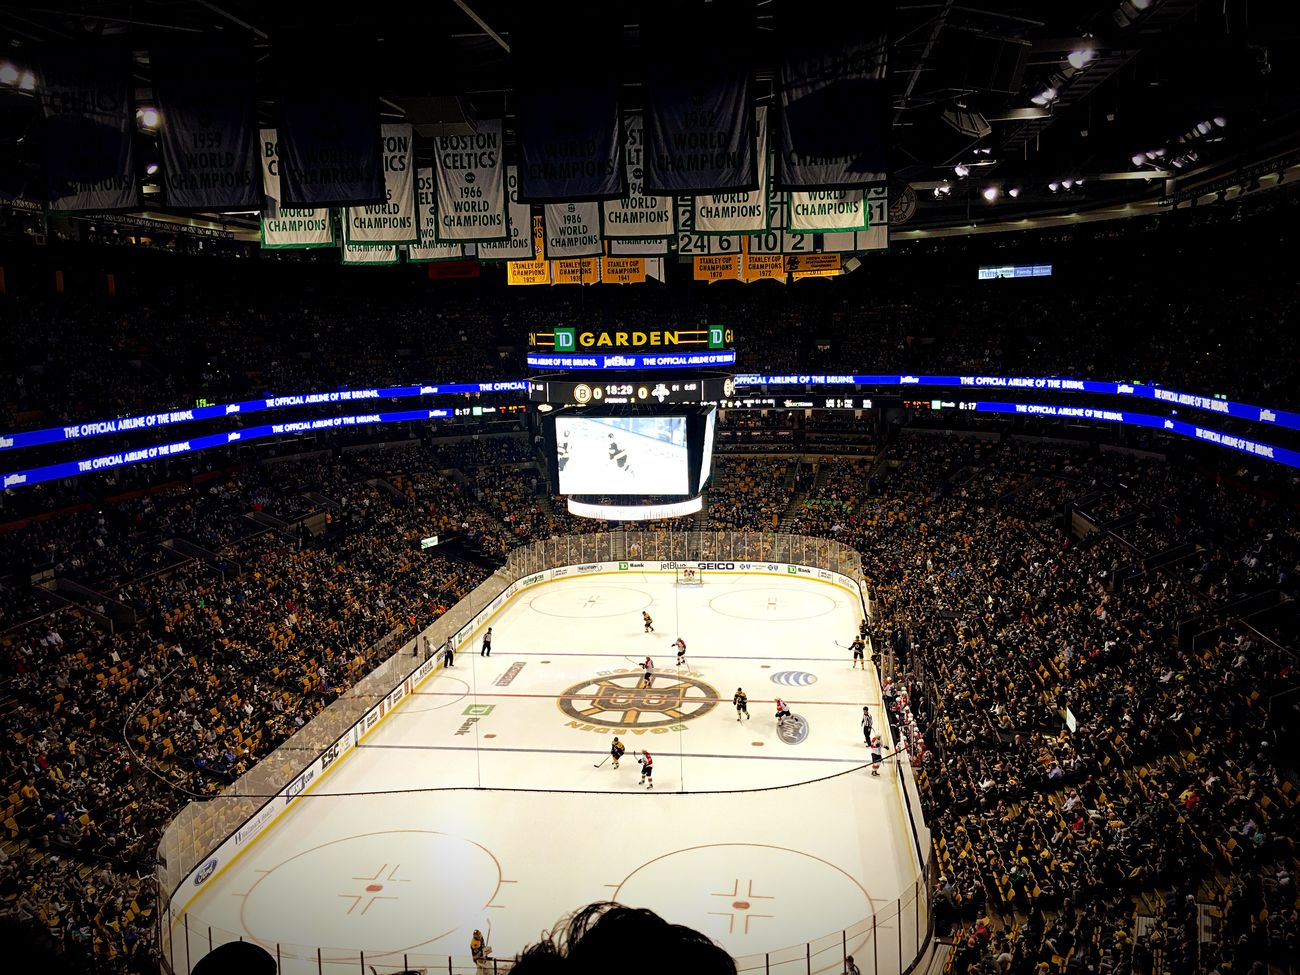 Boston Bruins BostonYoureMyHome Tdgarden Battle Of The Cities